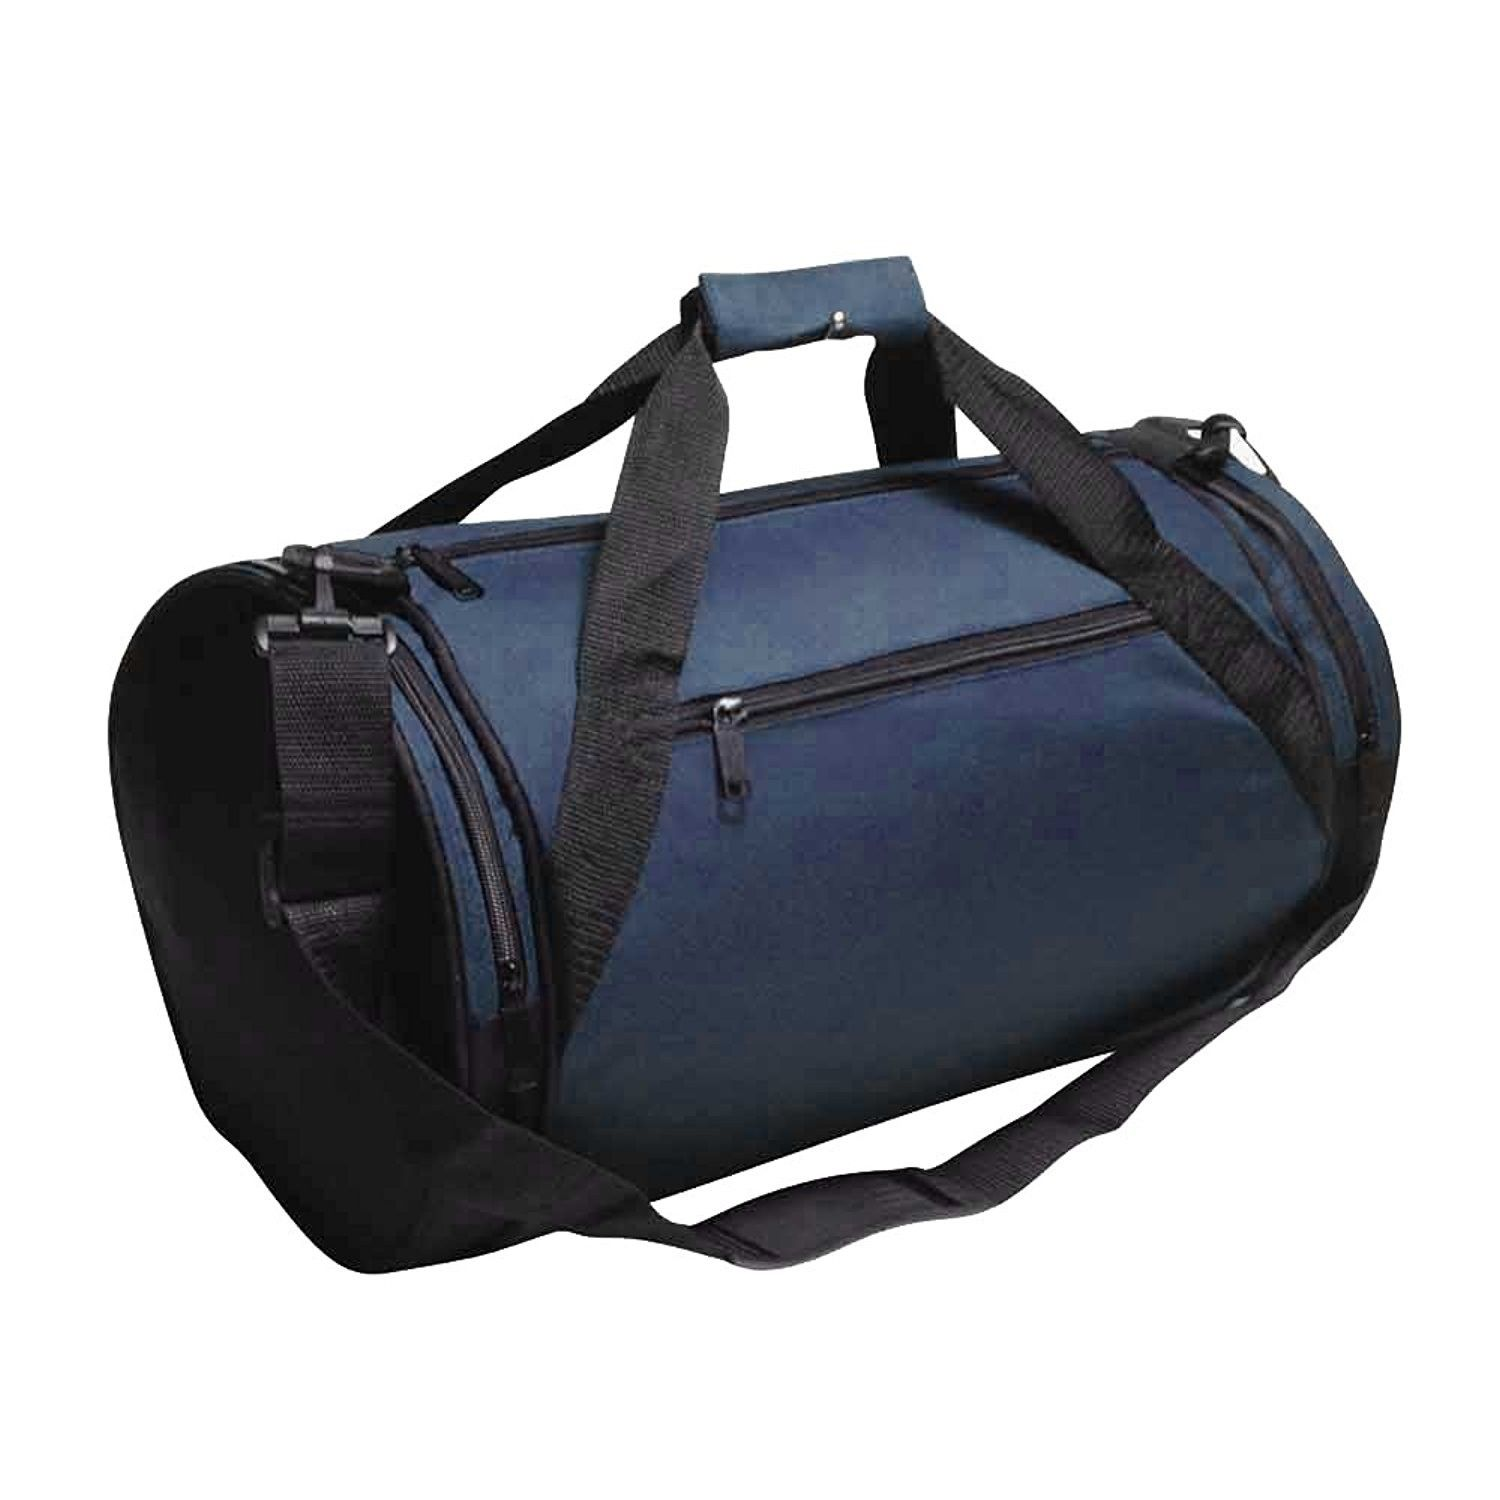 NAVY ROUND AFFORDABLE DUFFEL BAGS